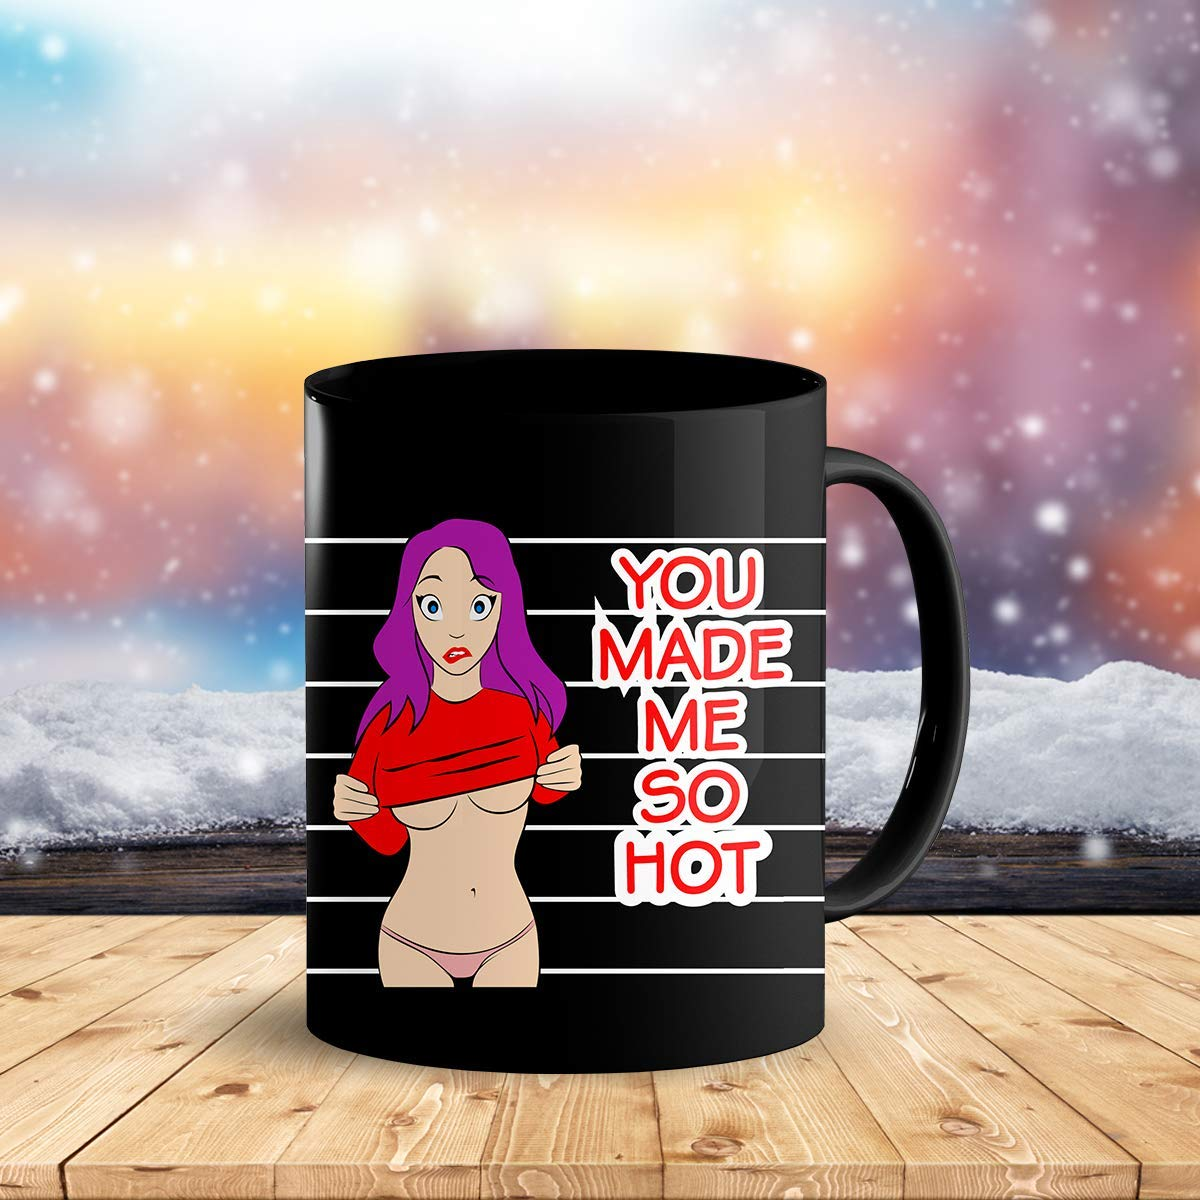 Heat Sensitive Color Changing Coffee Mug Funny Coffee Cup Hot Girl Design Funny Gift Idea B07D21CPTQ 9